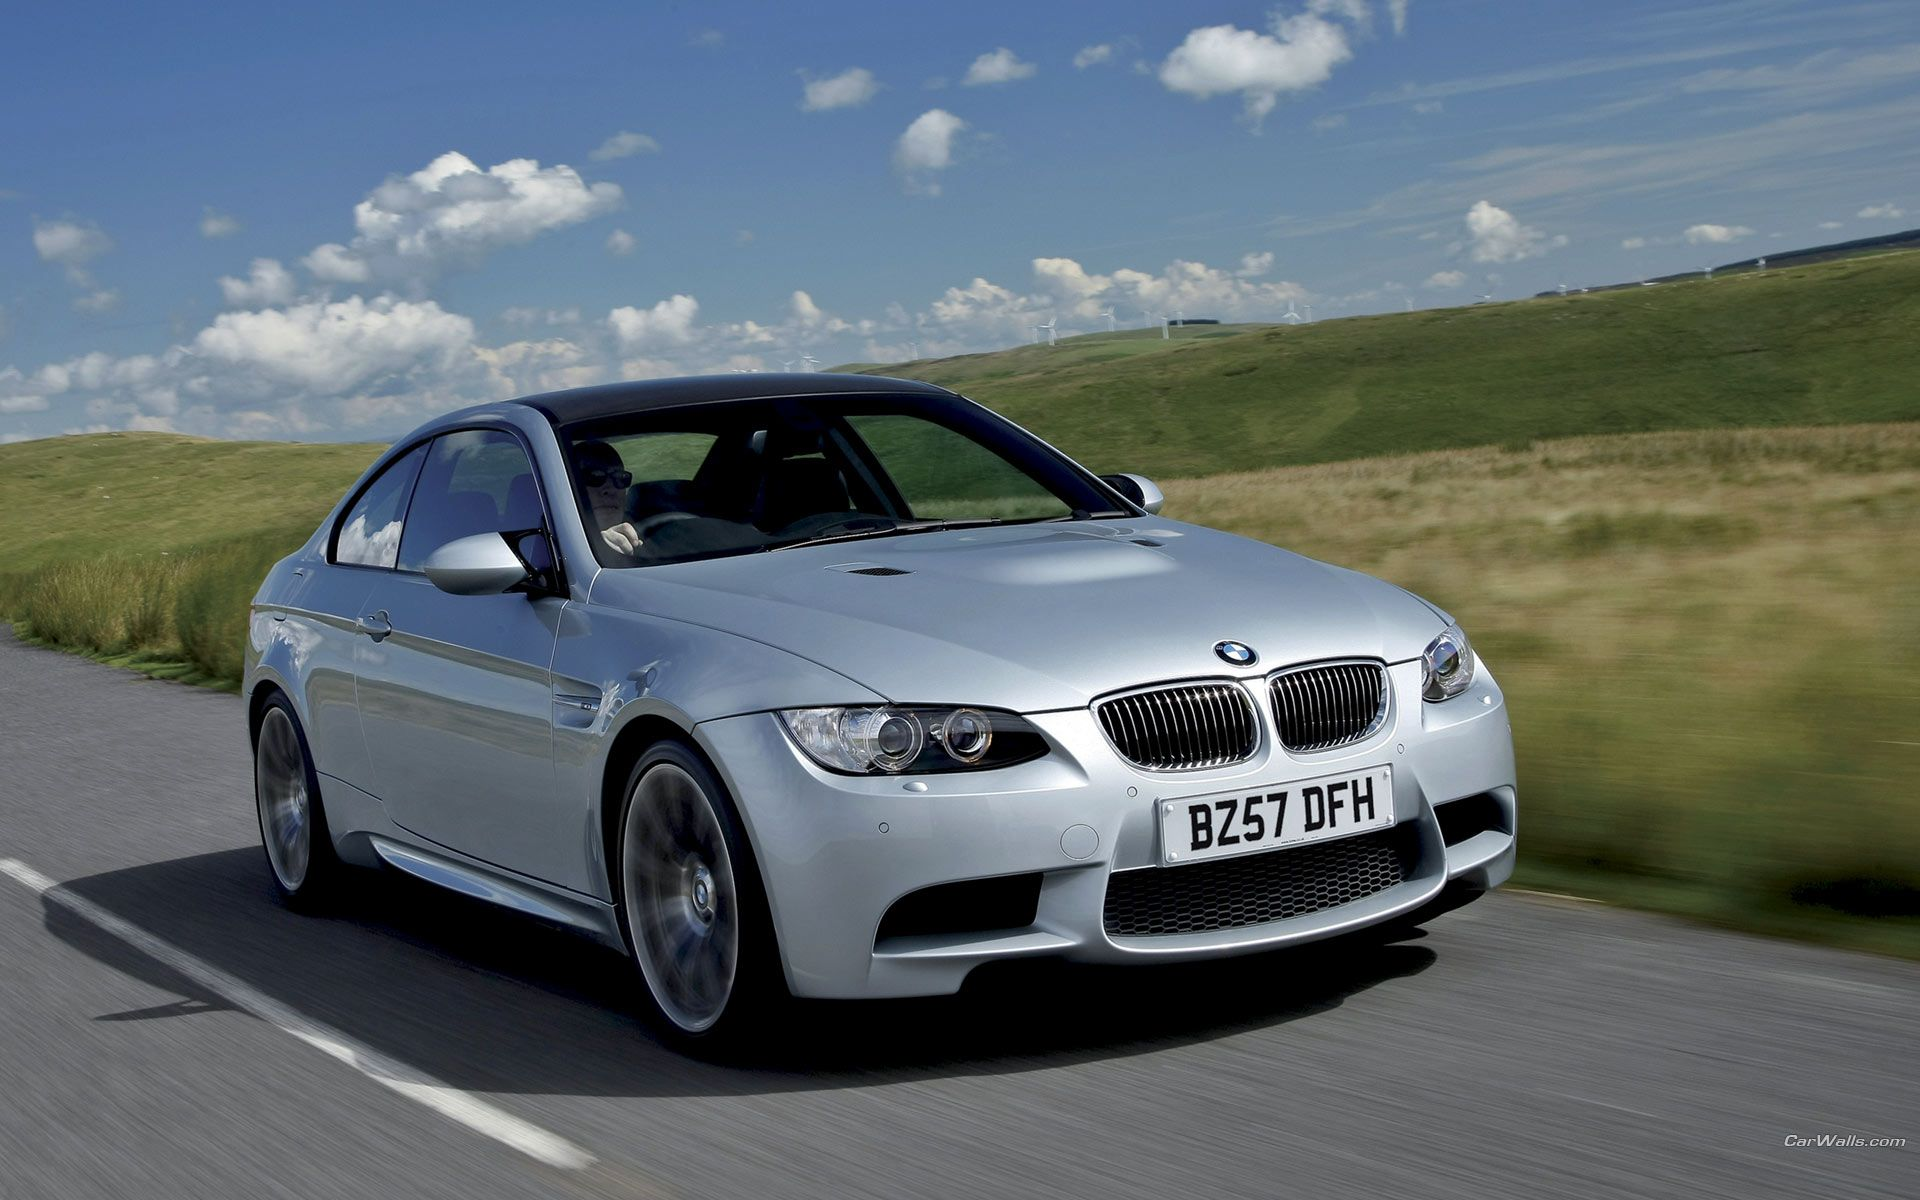 Cool car bmw m3 check out these bimmers http